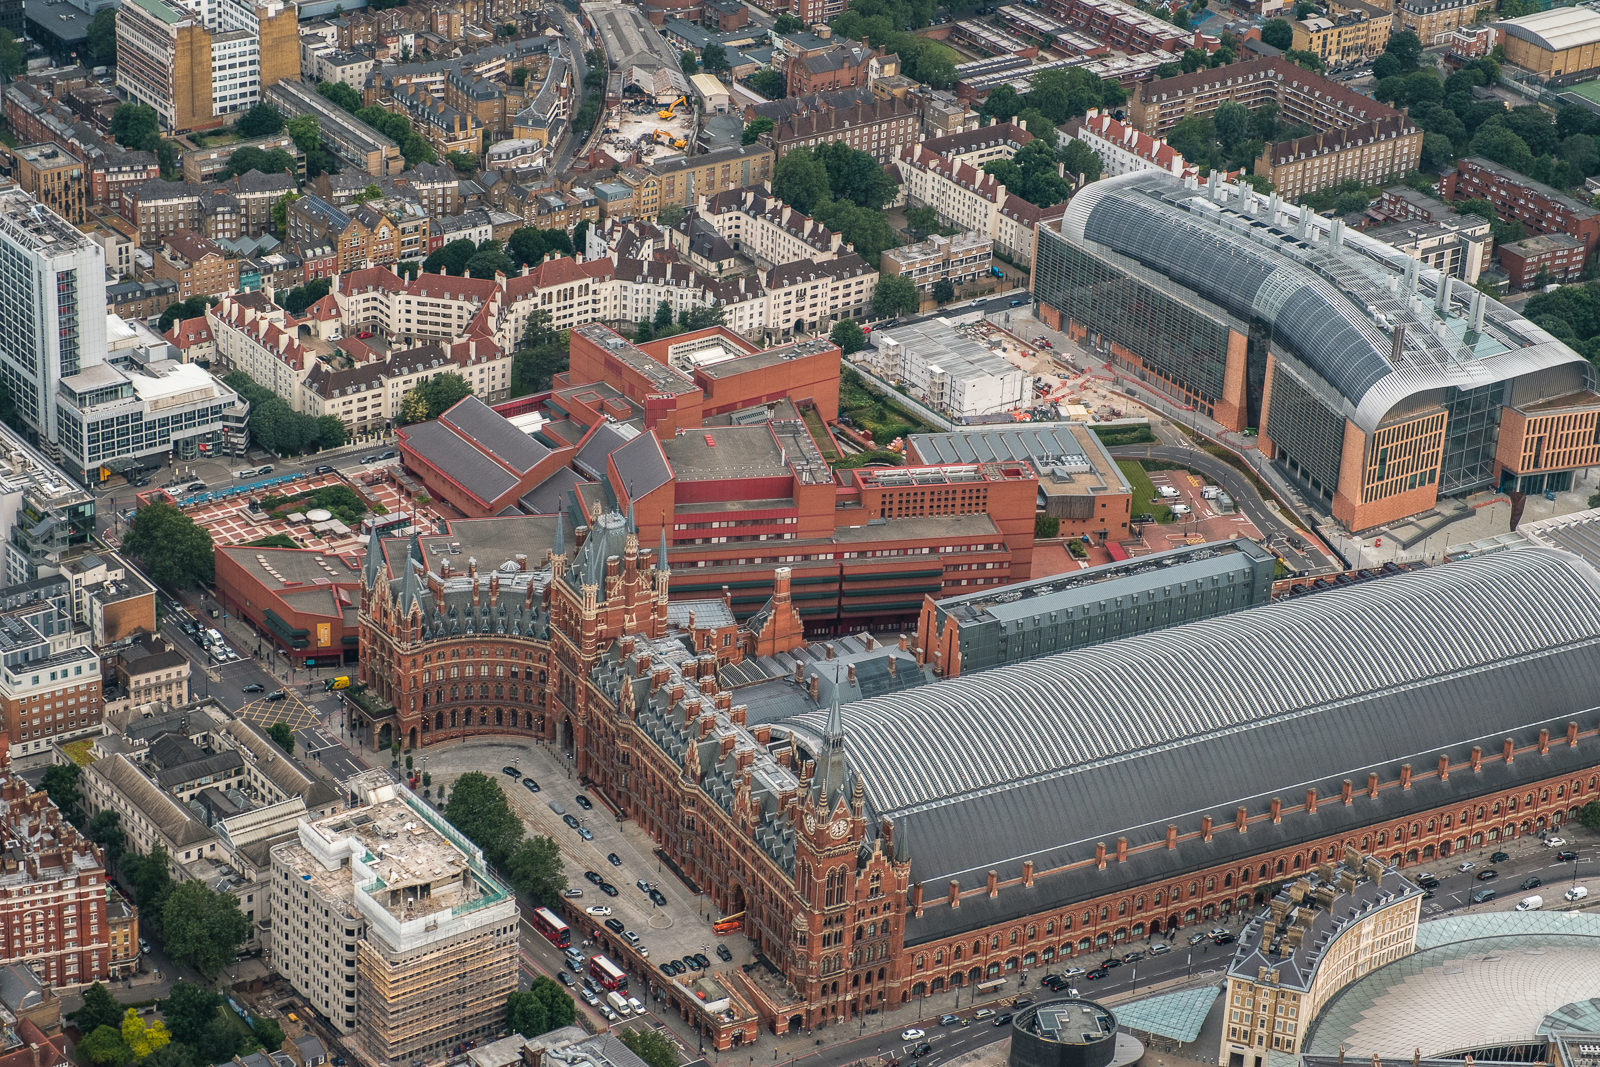 St Pancras station and Brish Library. Top right- new Francis Crick Institute. ISO800 16-55mm f2.8 1/250s